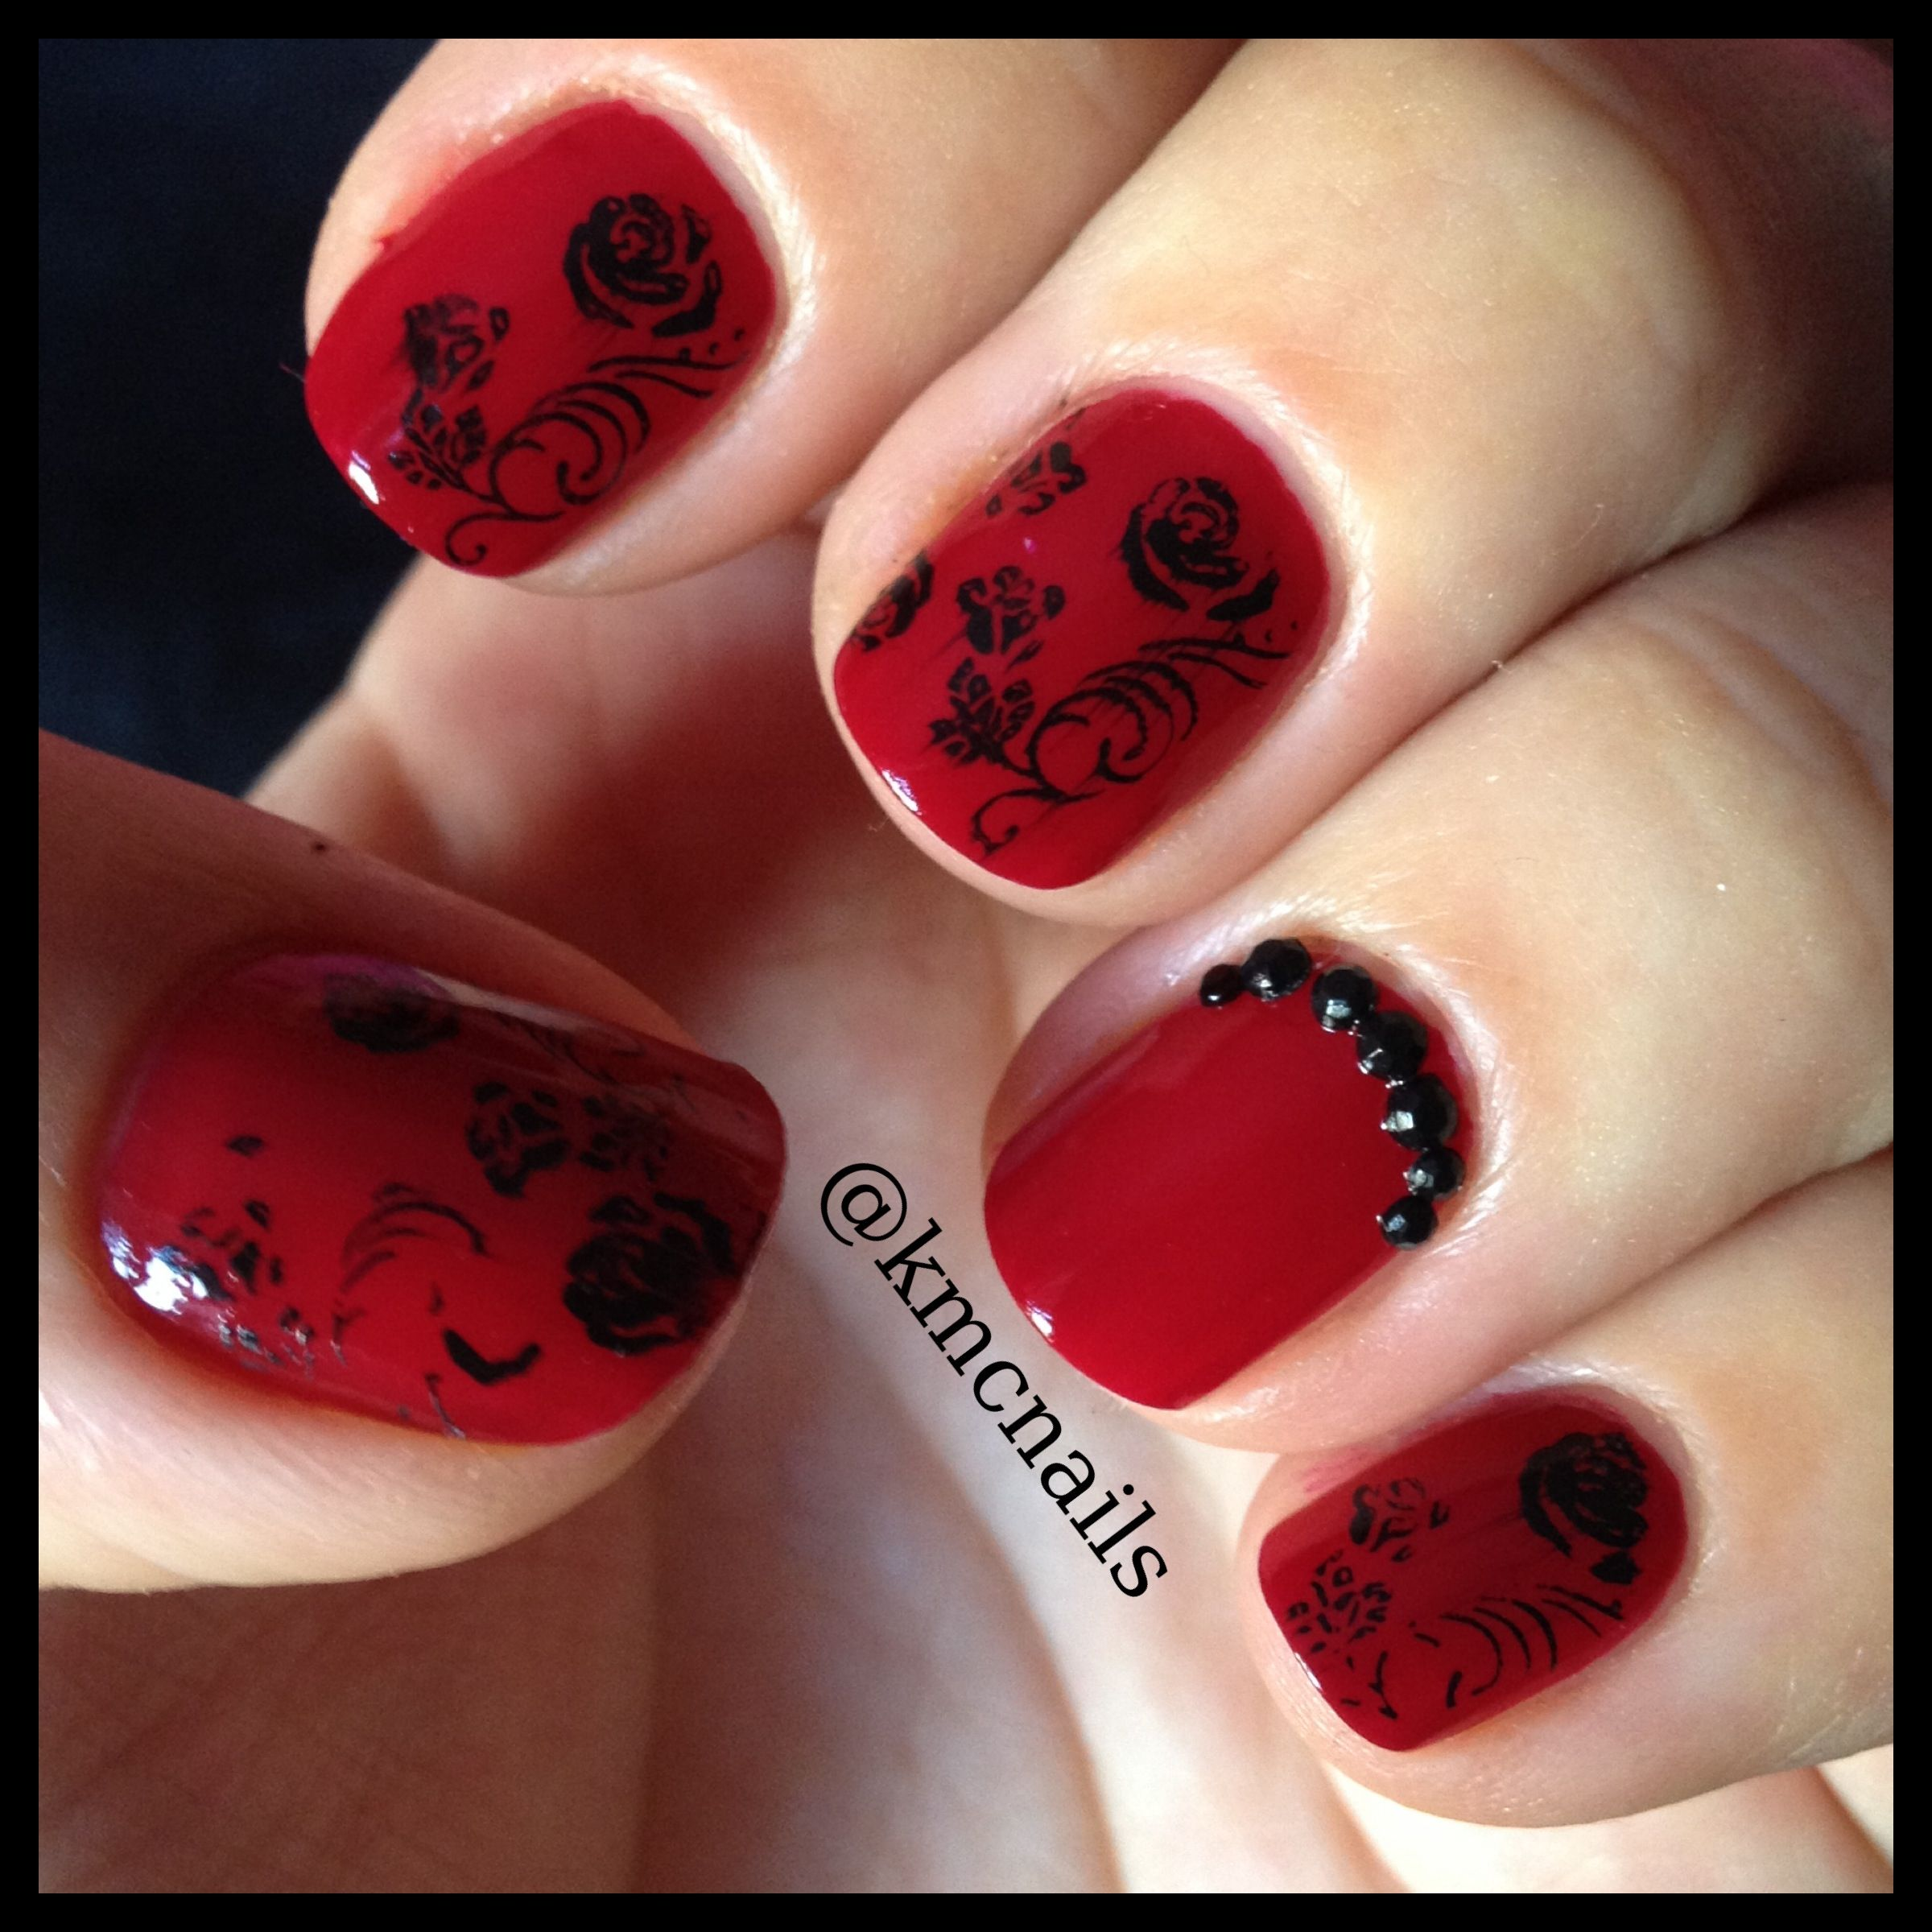 Red and black gothic rose nail art using konad stamps wedding